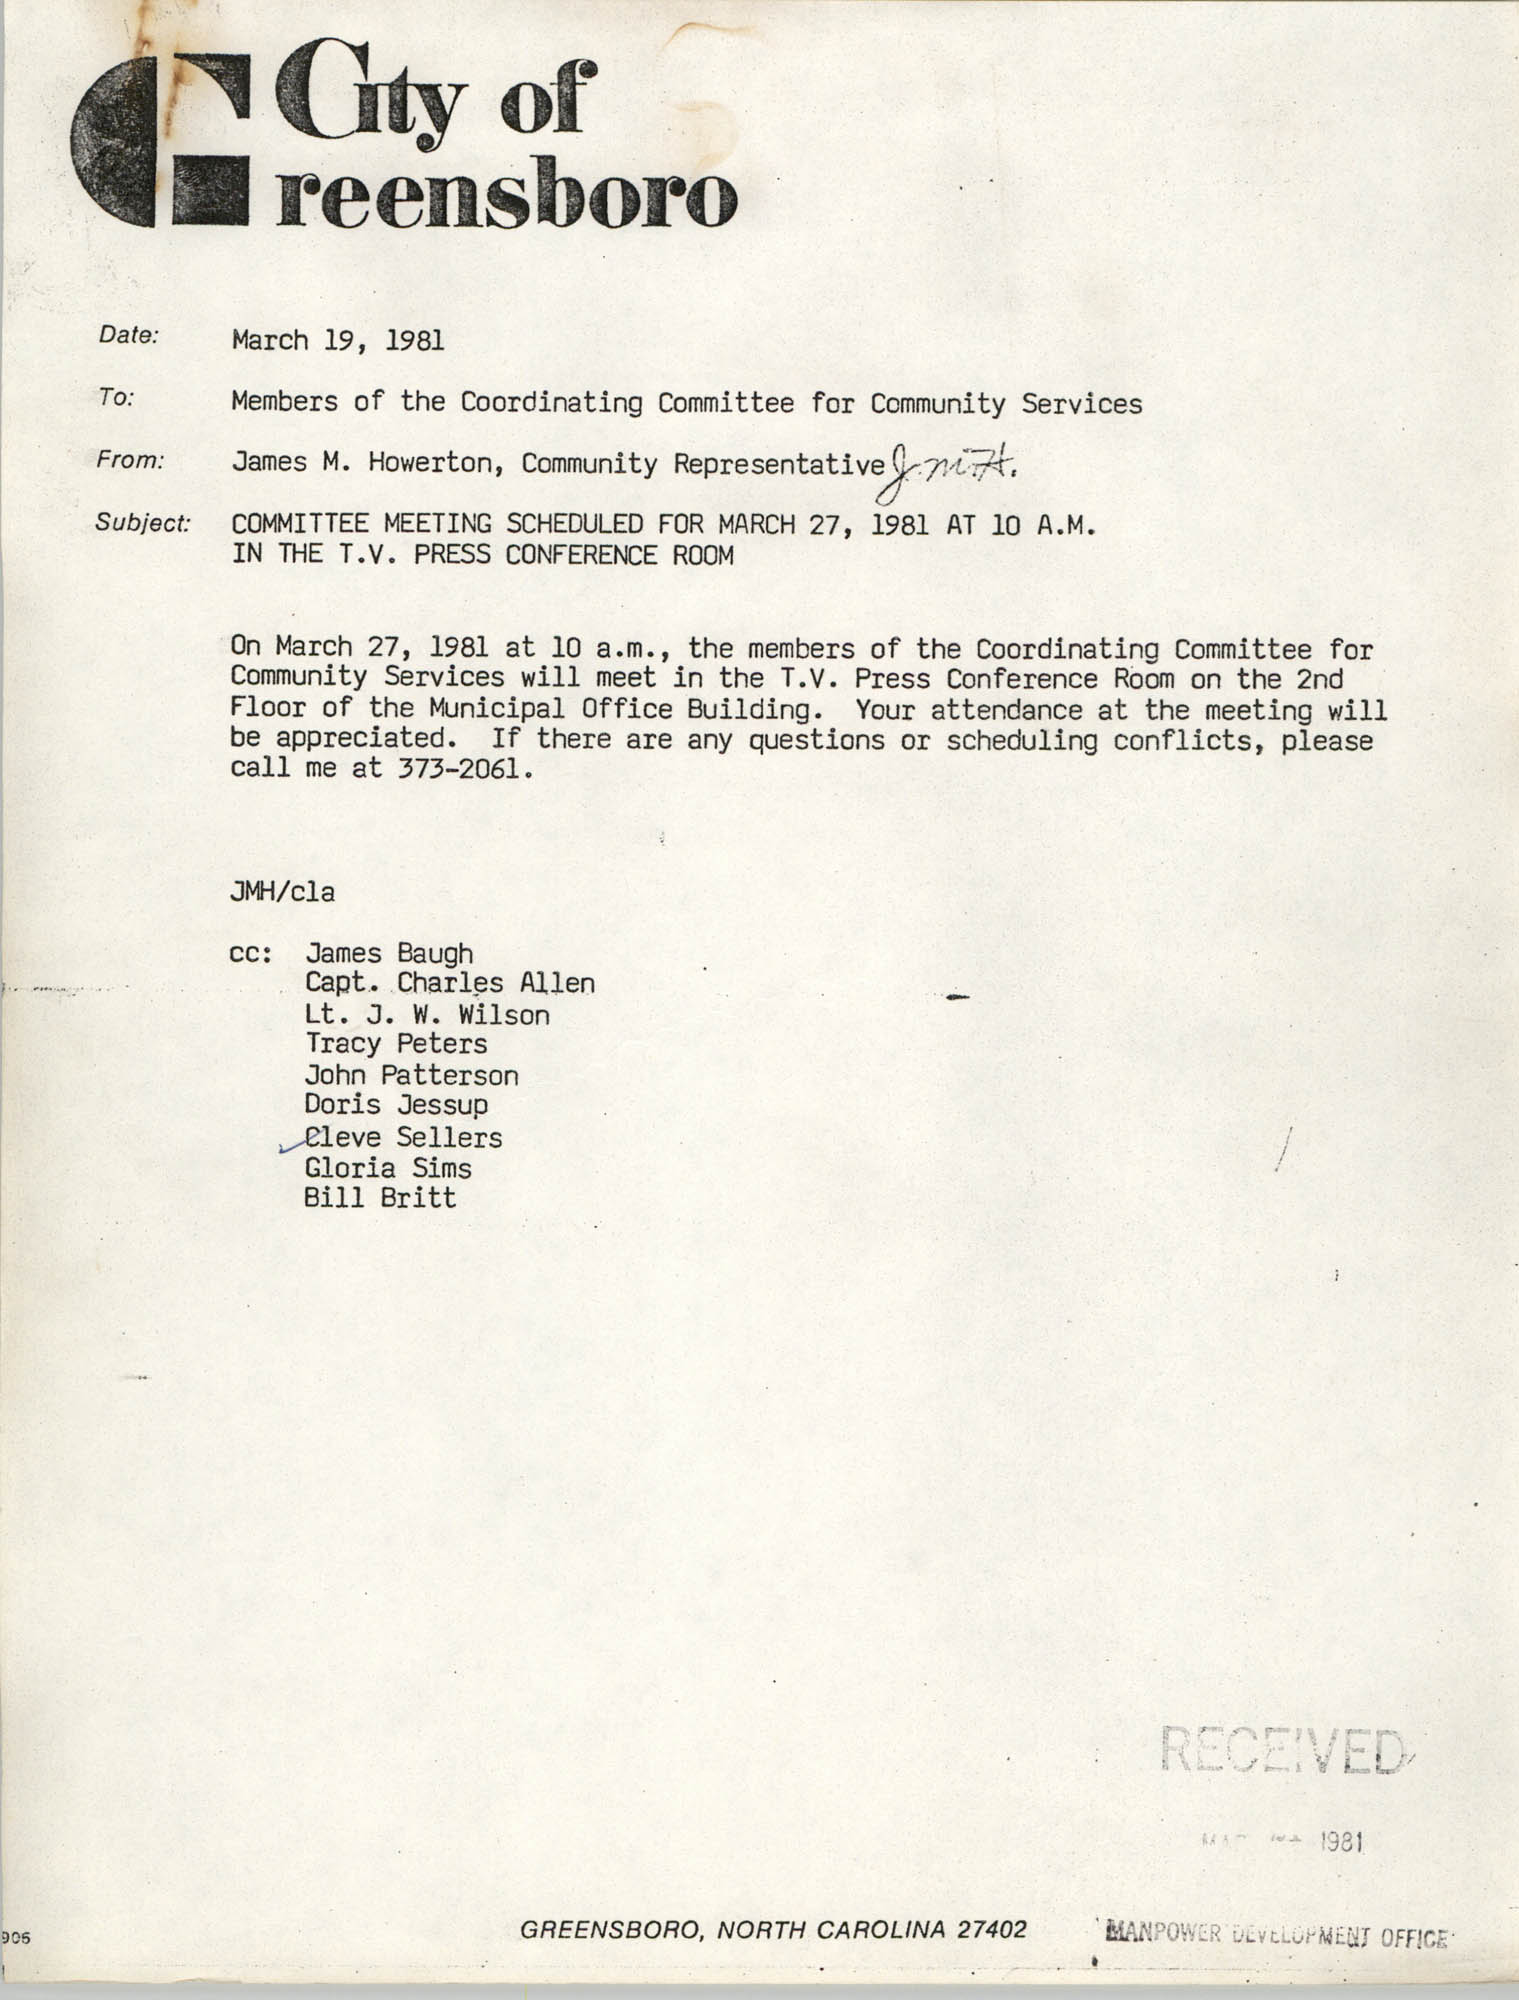 City of Greensboro Memorandum, March 19, 1981